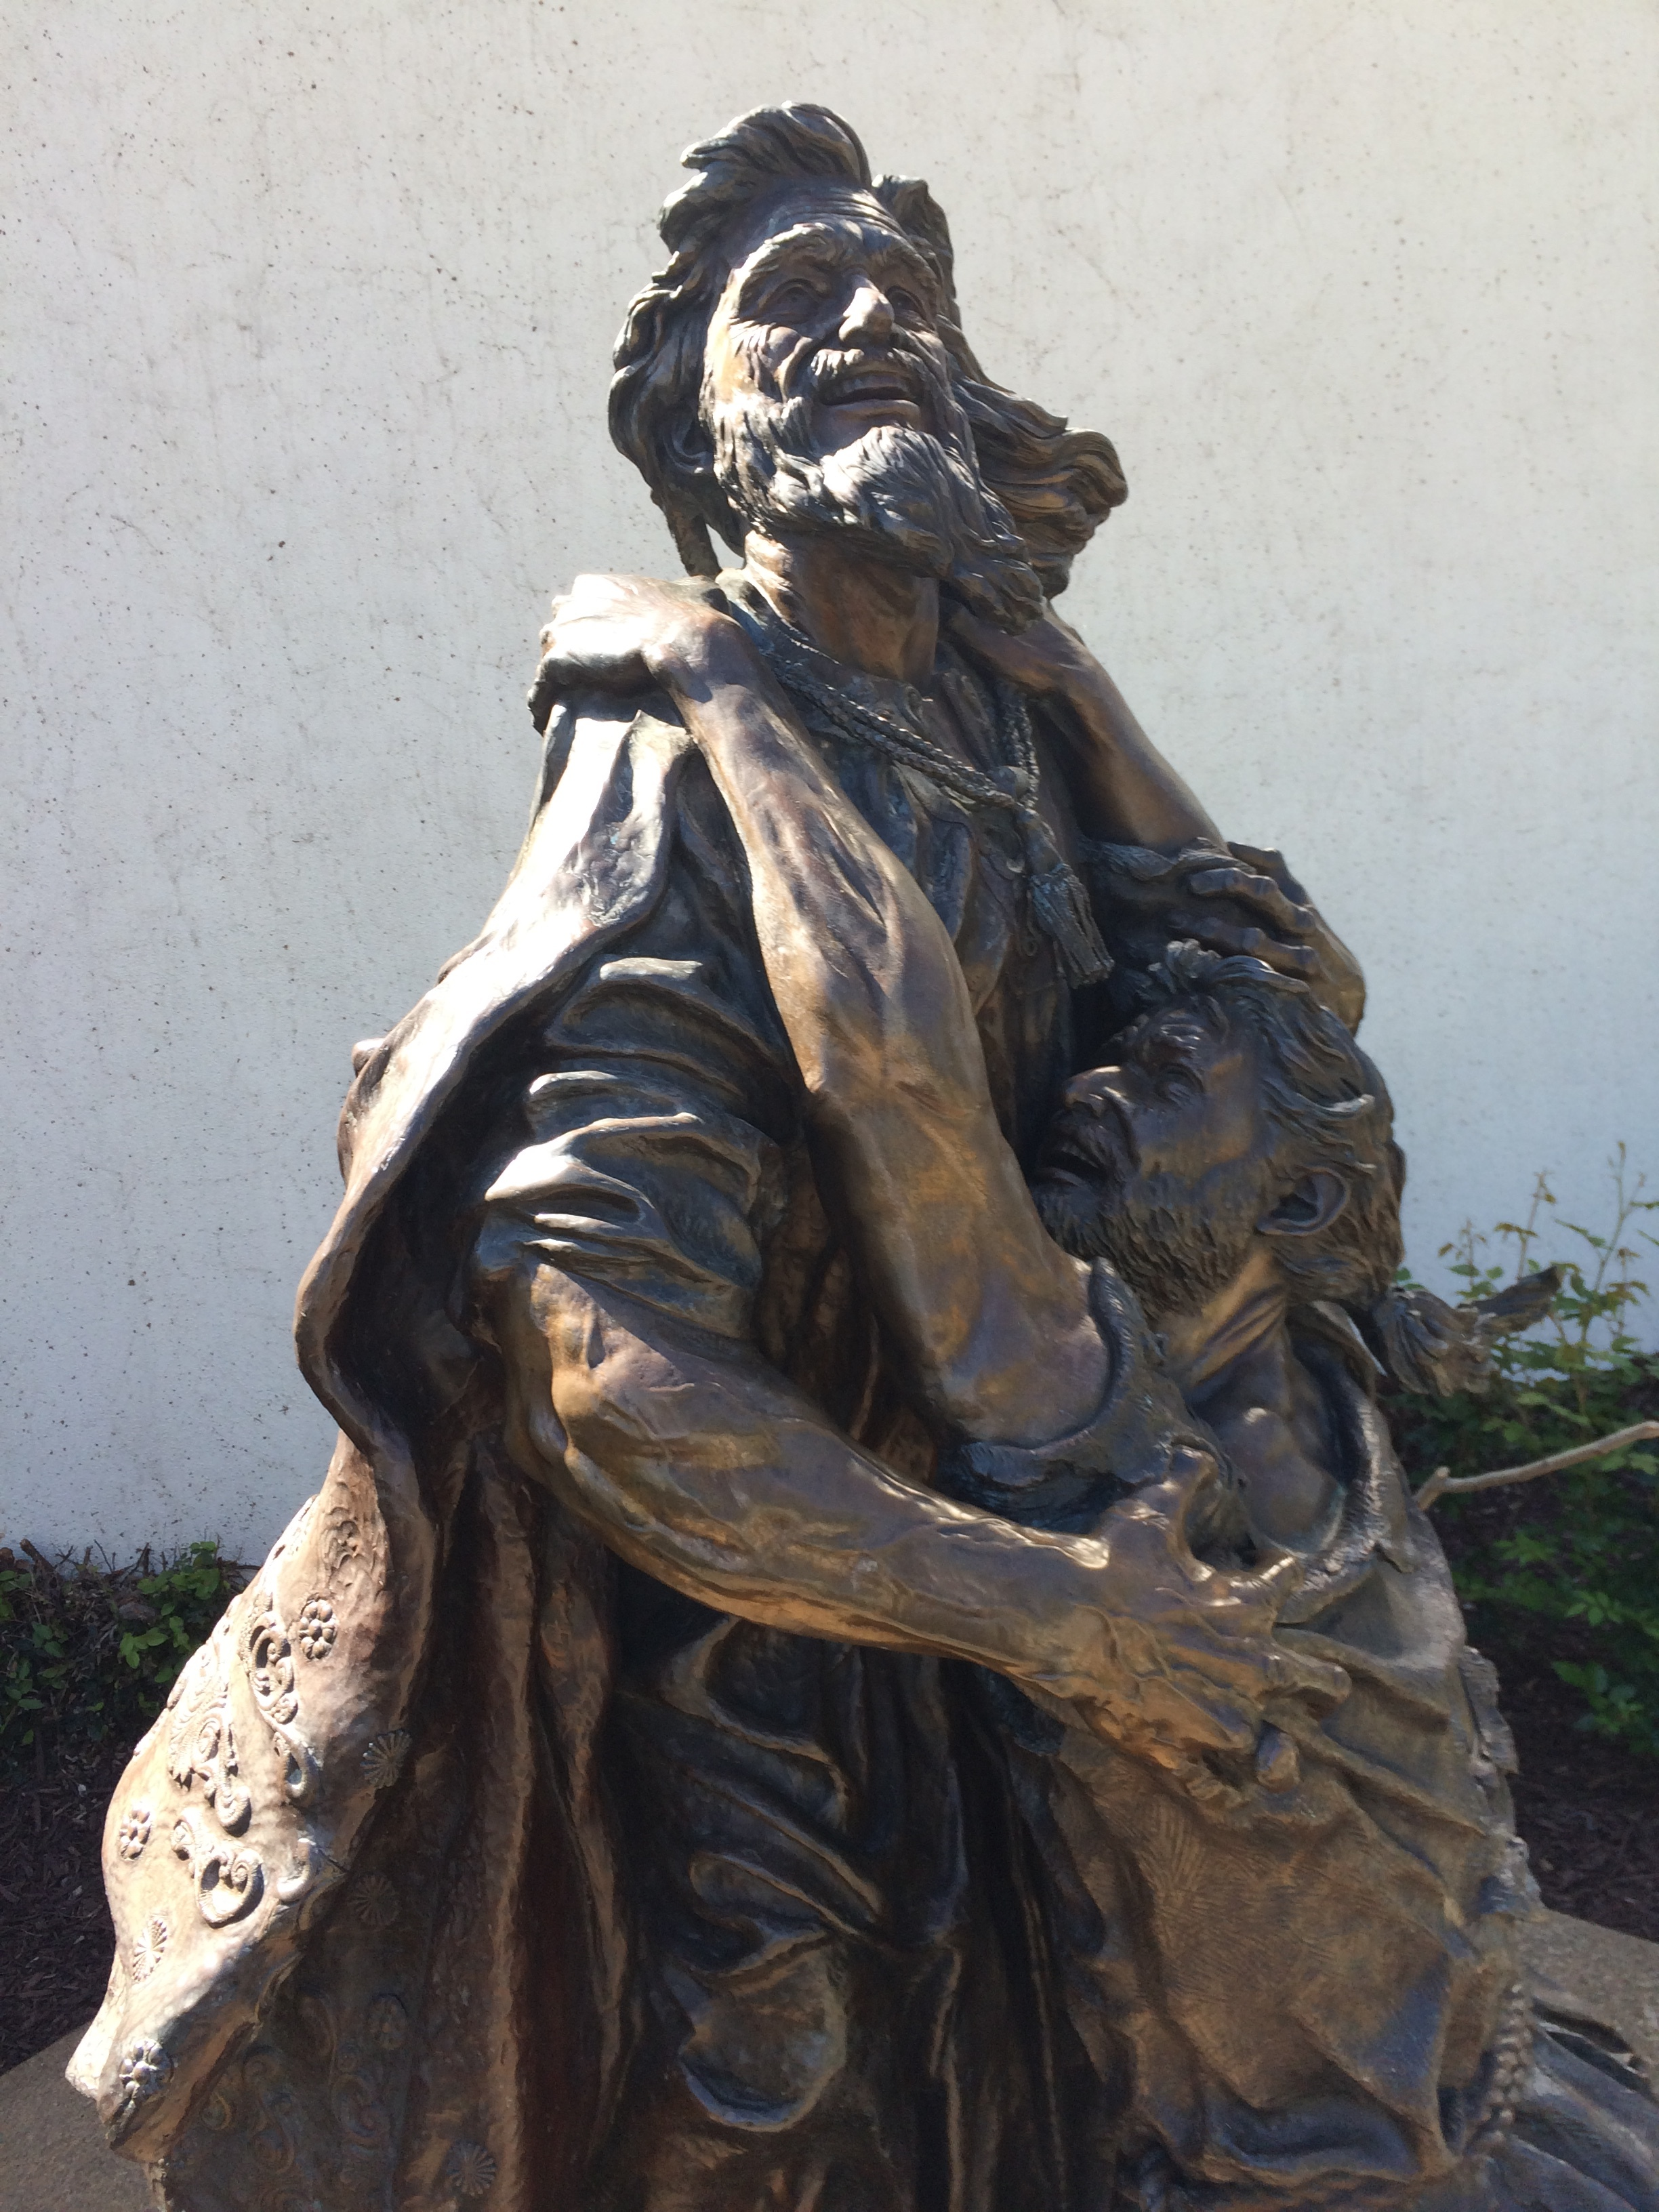 Statue of the Prodigal Son, Christ Cathedral, Garden Grove California. Site of Accountability Brothers' origin.